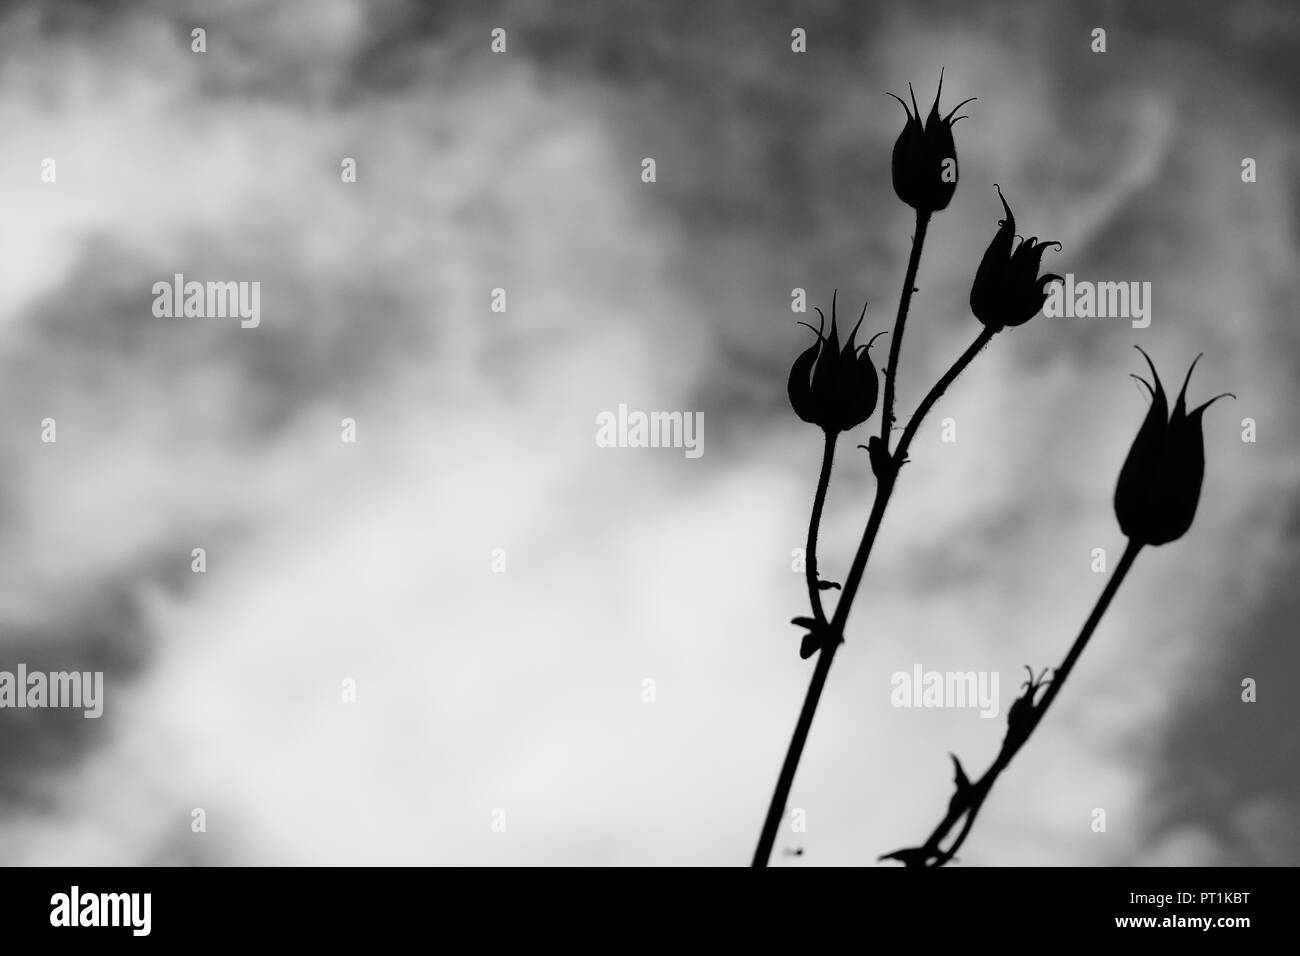 Seed pods on top of long stems in a garden. - Stock Image